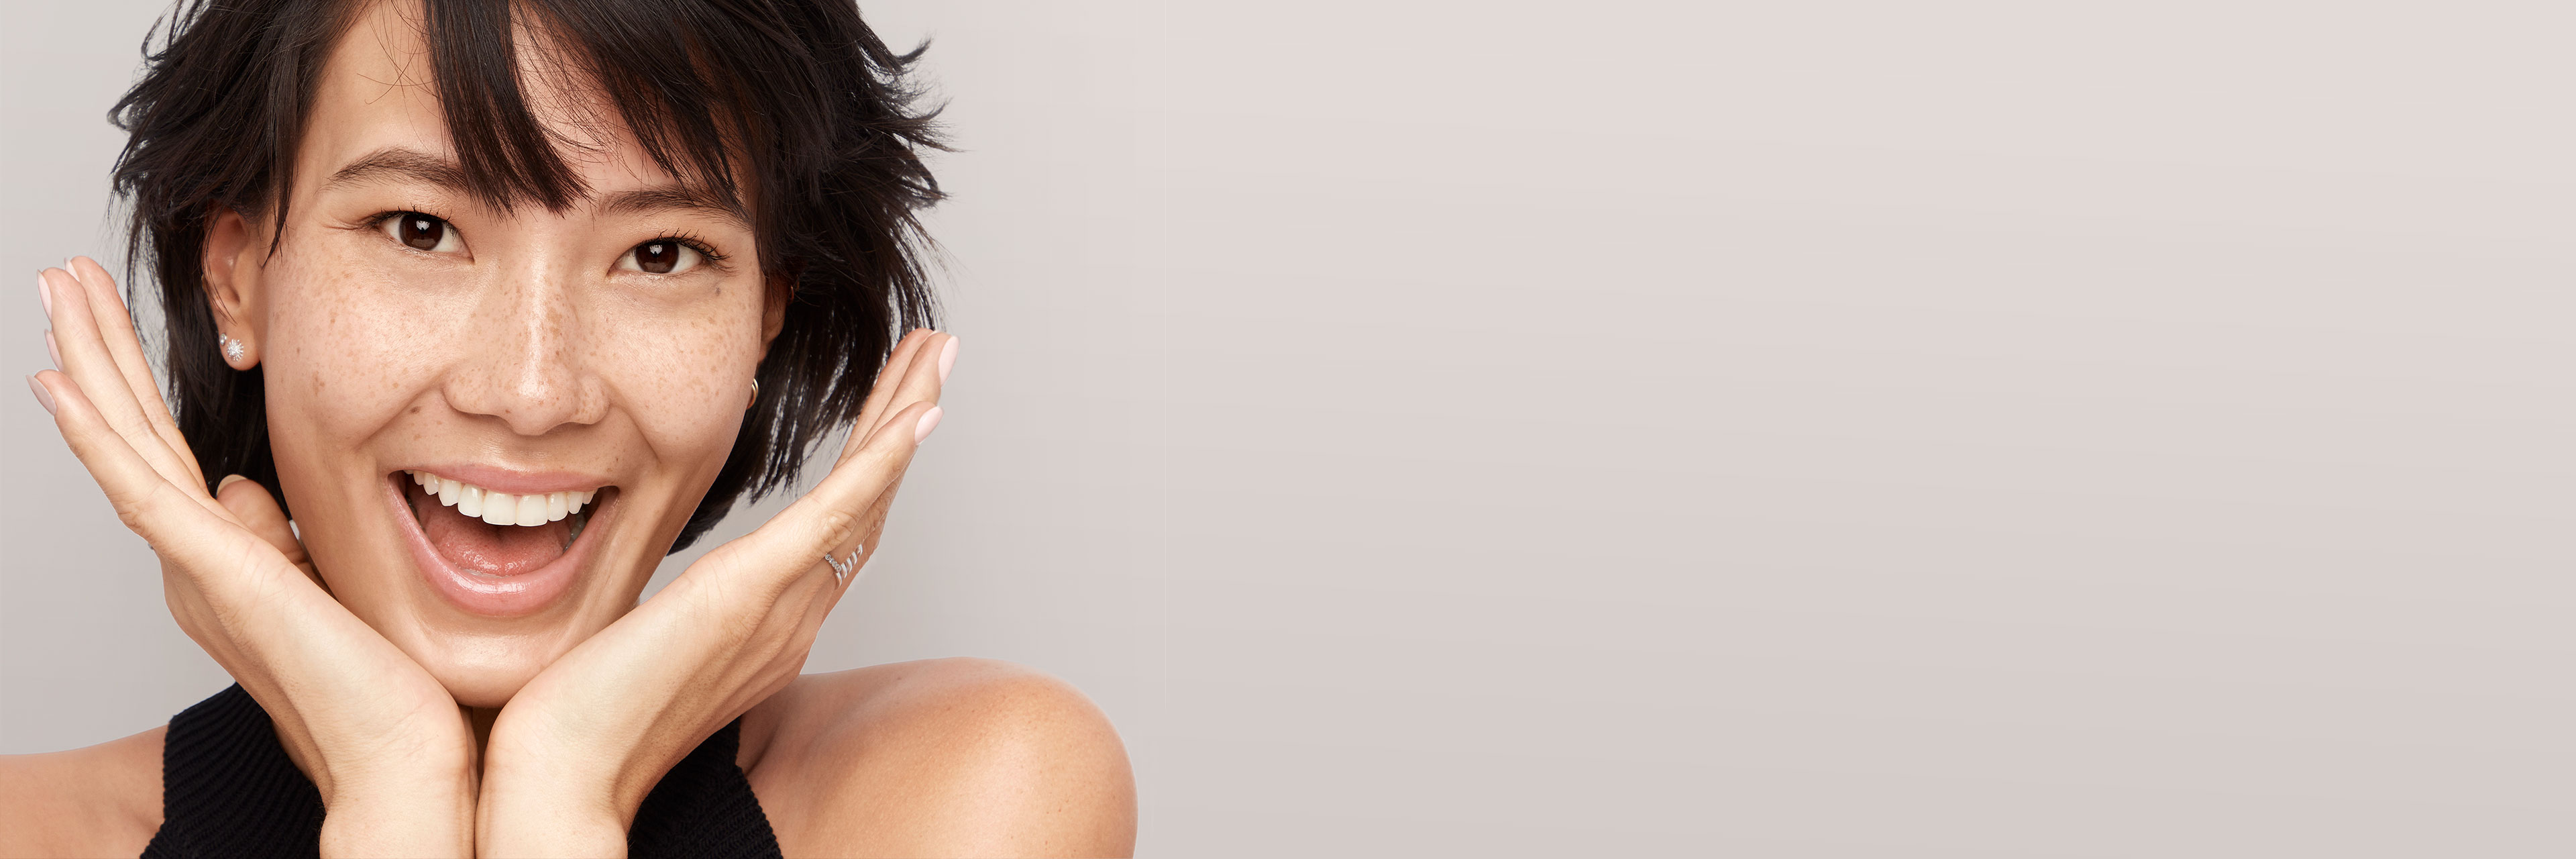 When to start using anti-aging skincare